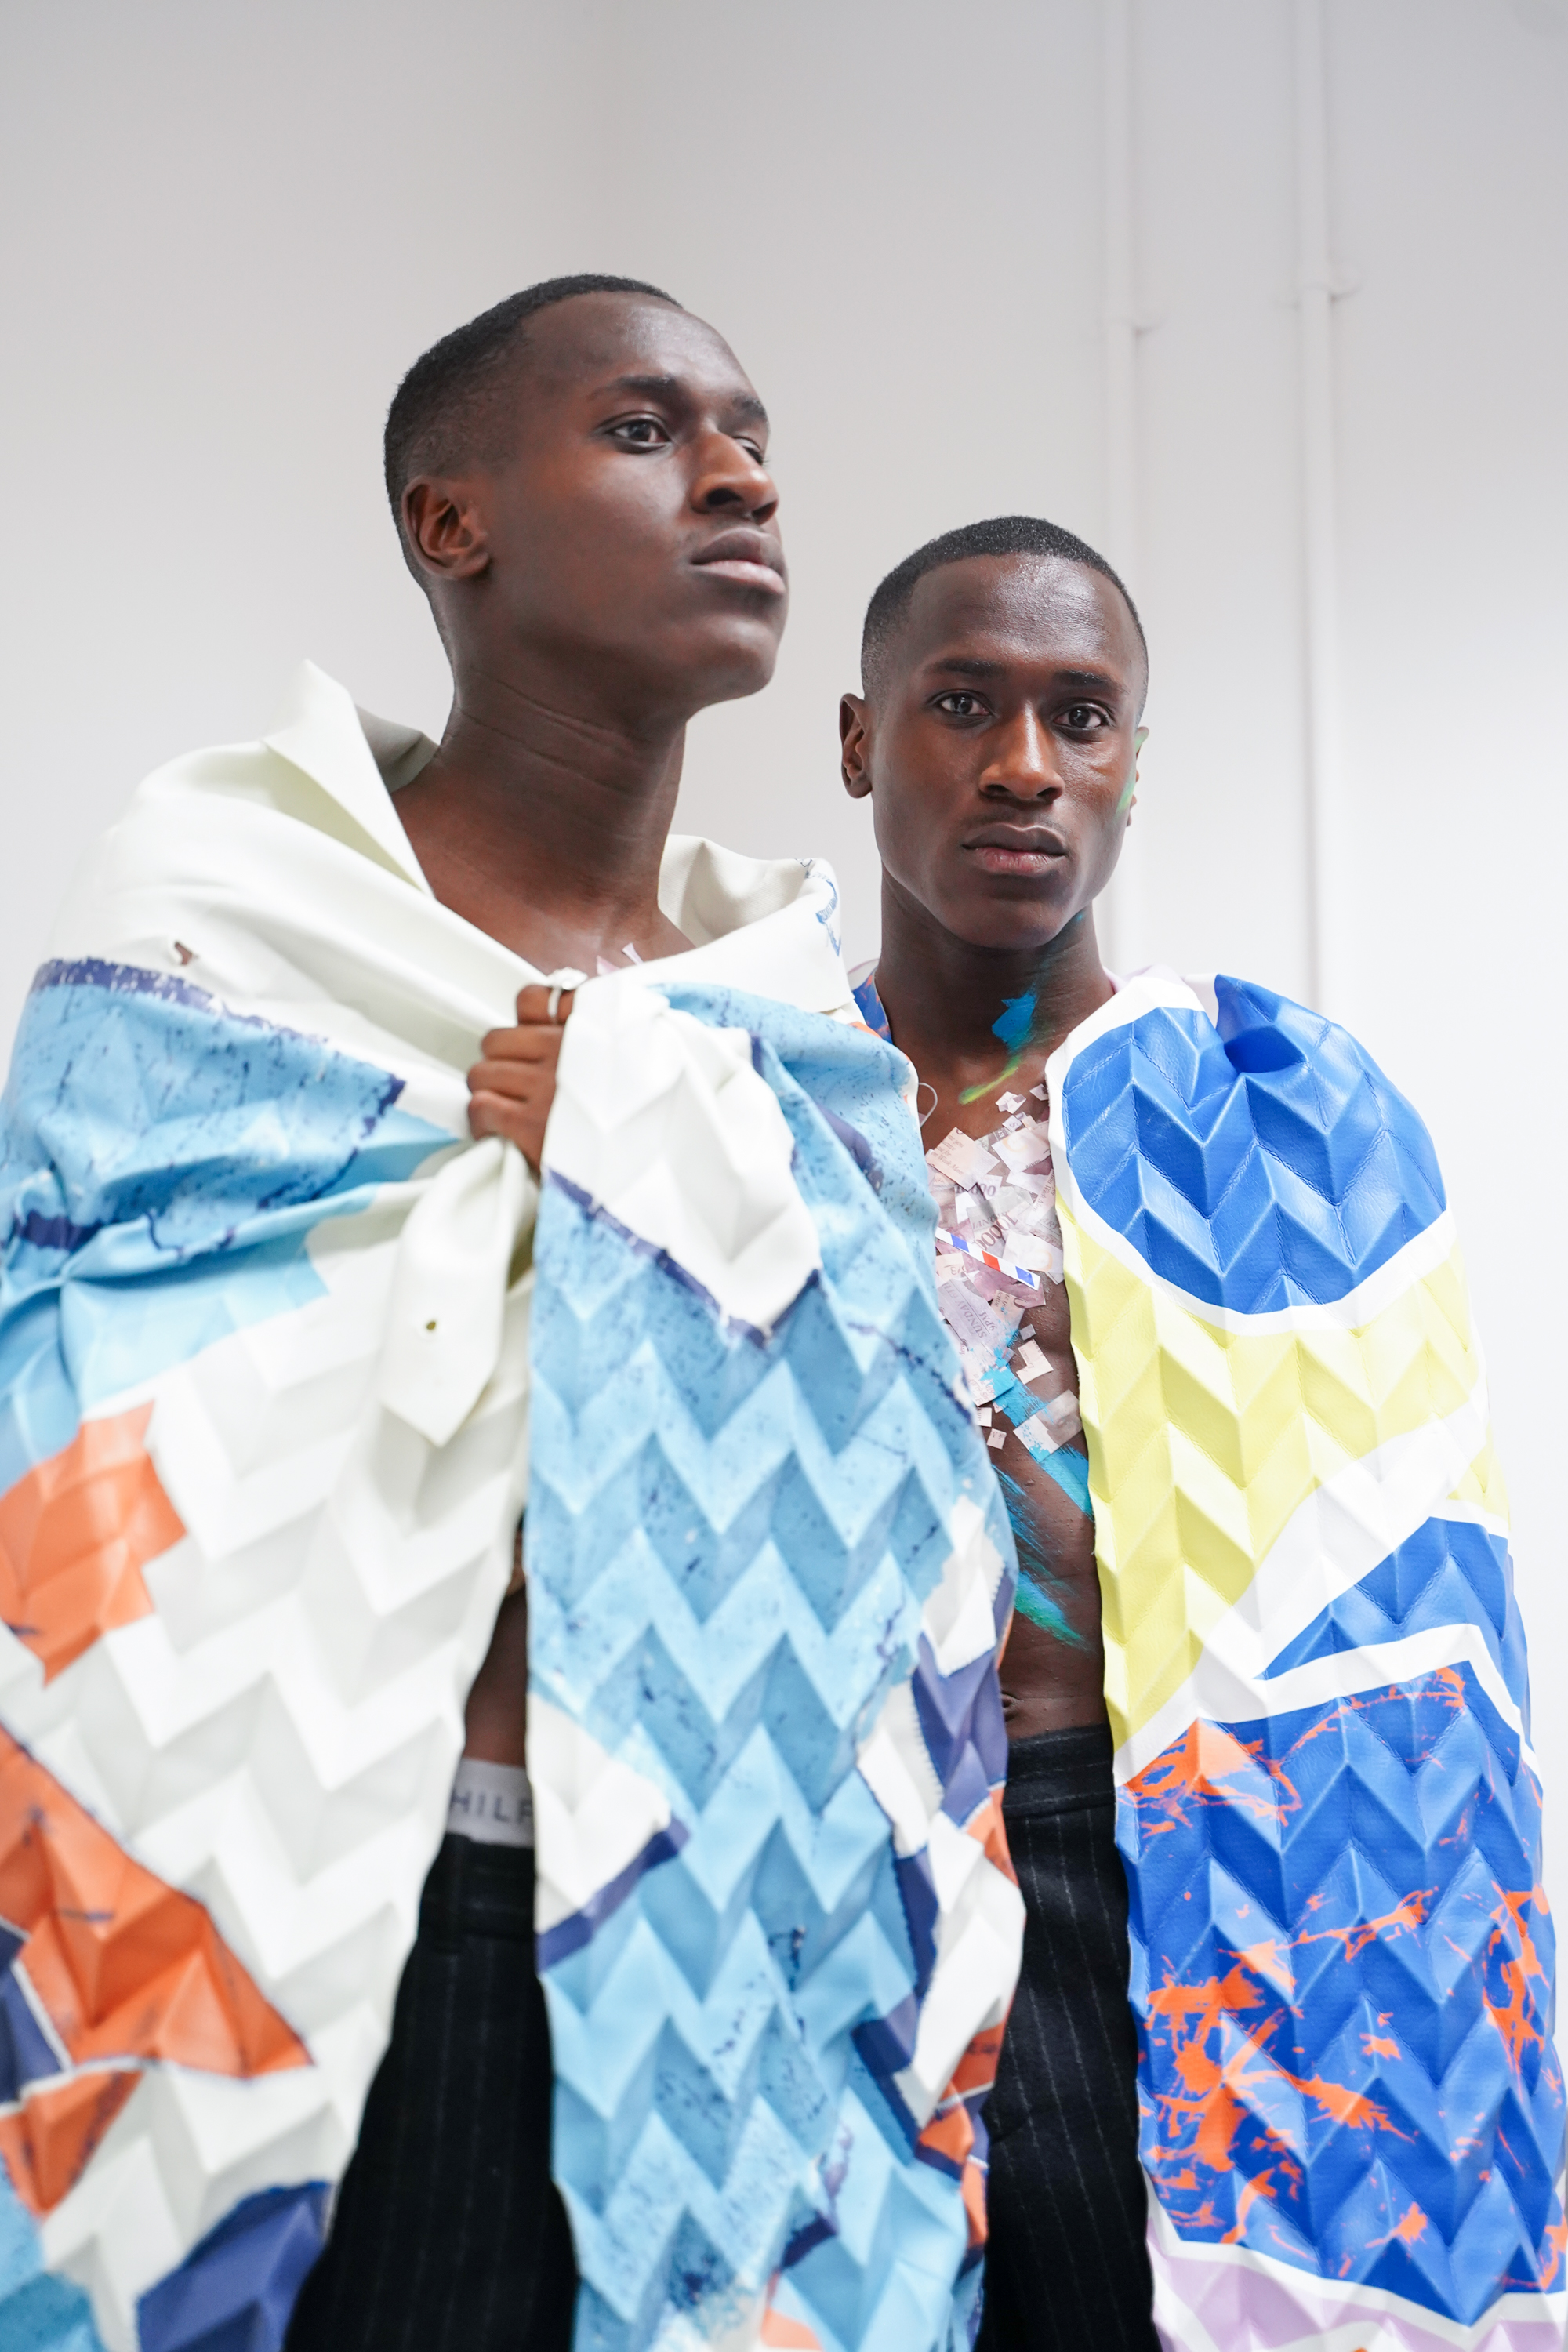 THE FLAG (LABRUM LONDON AW19)